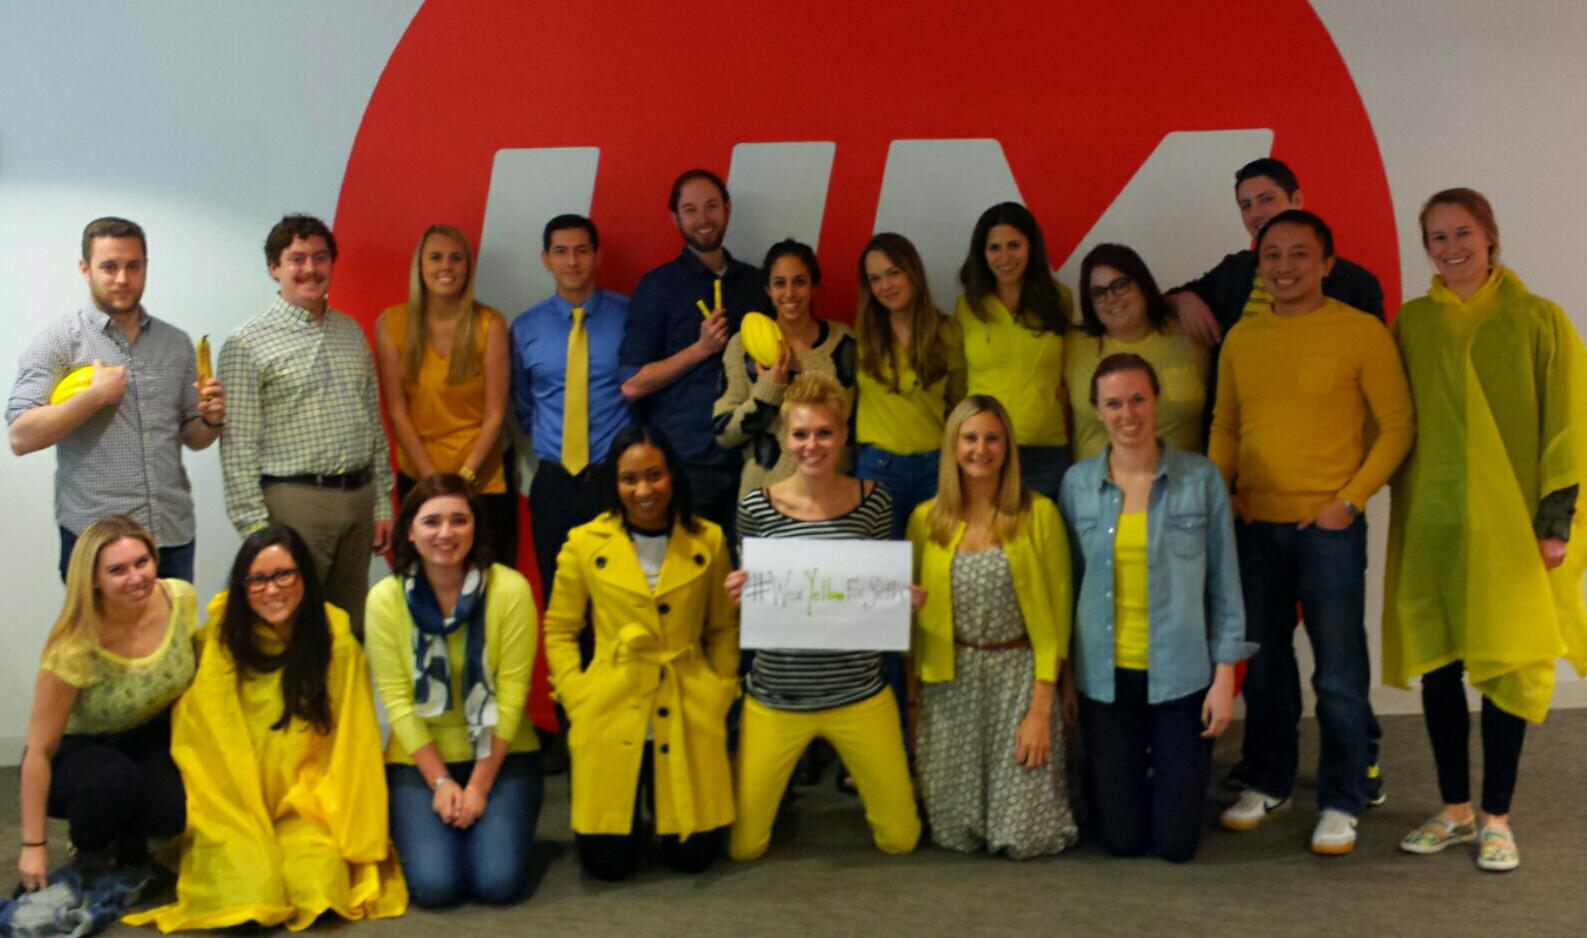 UM is participating in #WearYellowForSeth today, are you? http://t.co/NL3KKe52An